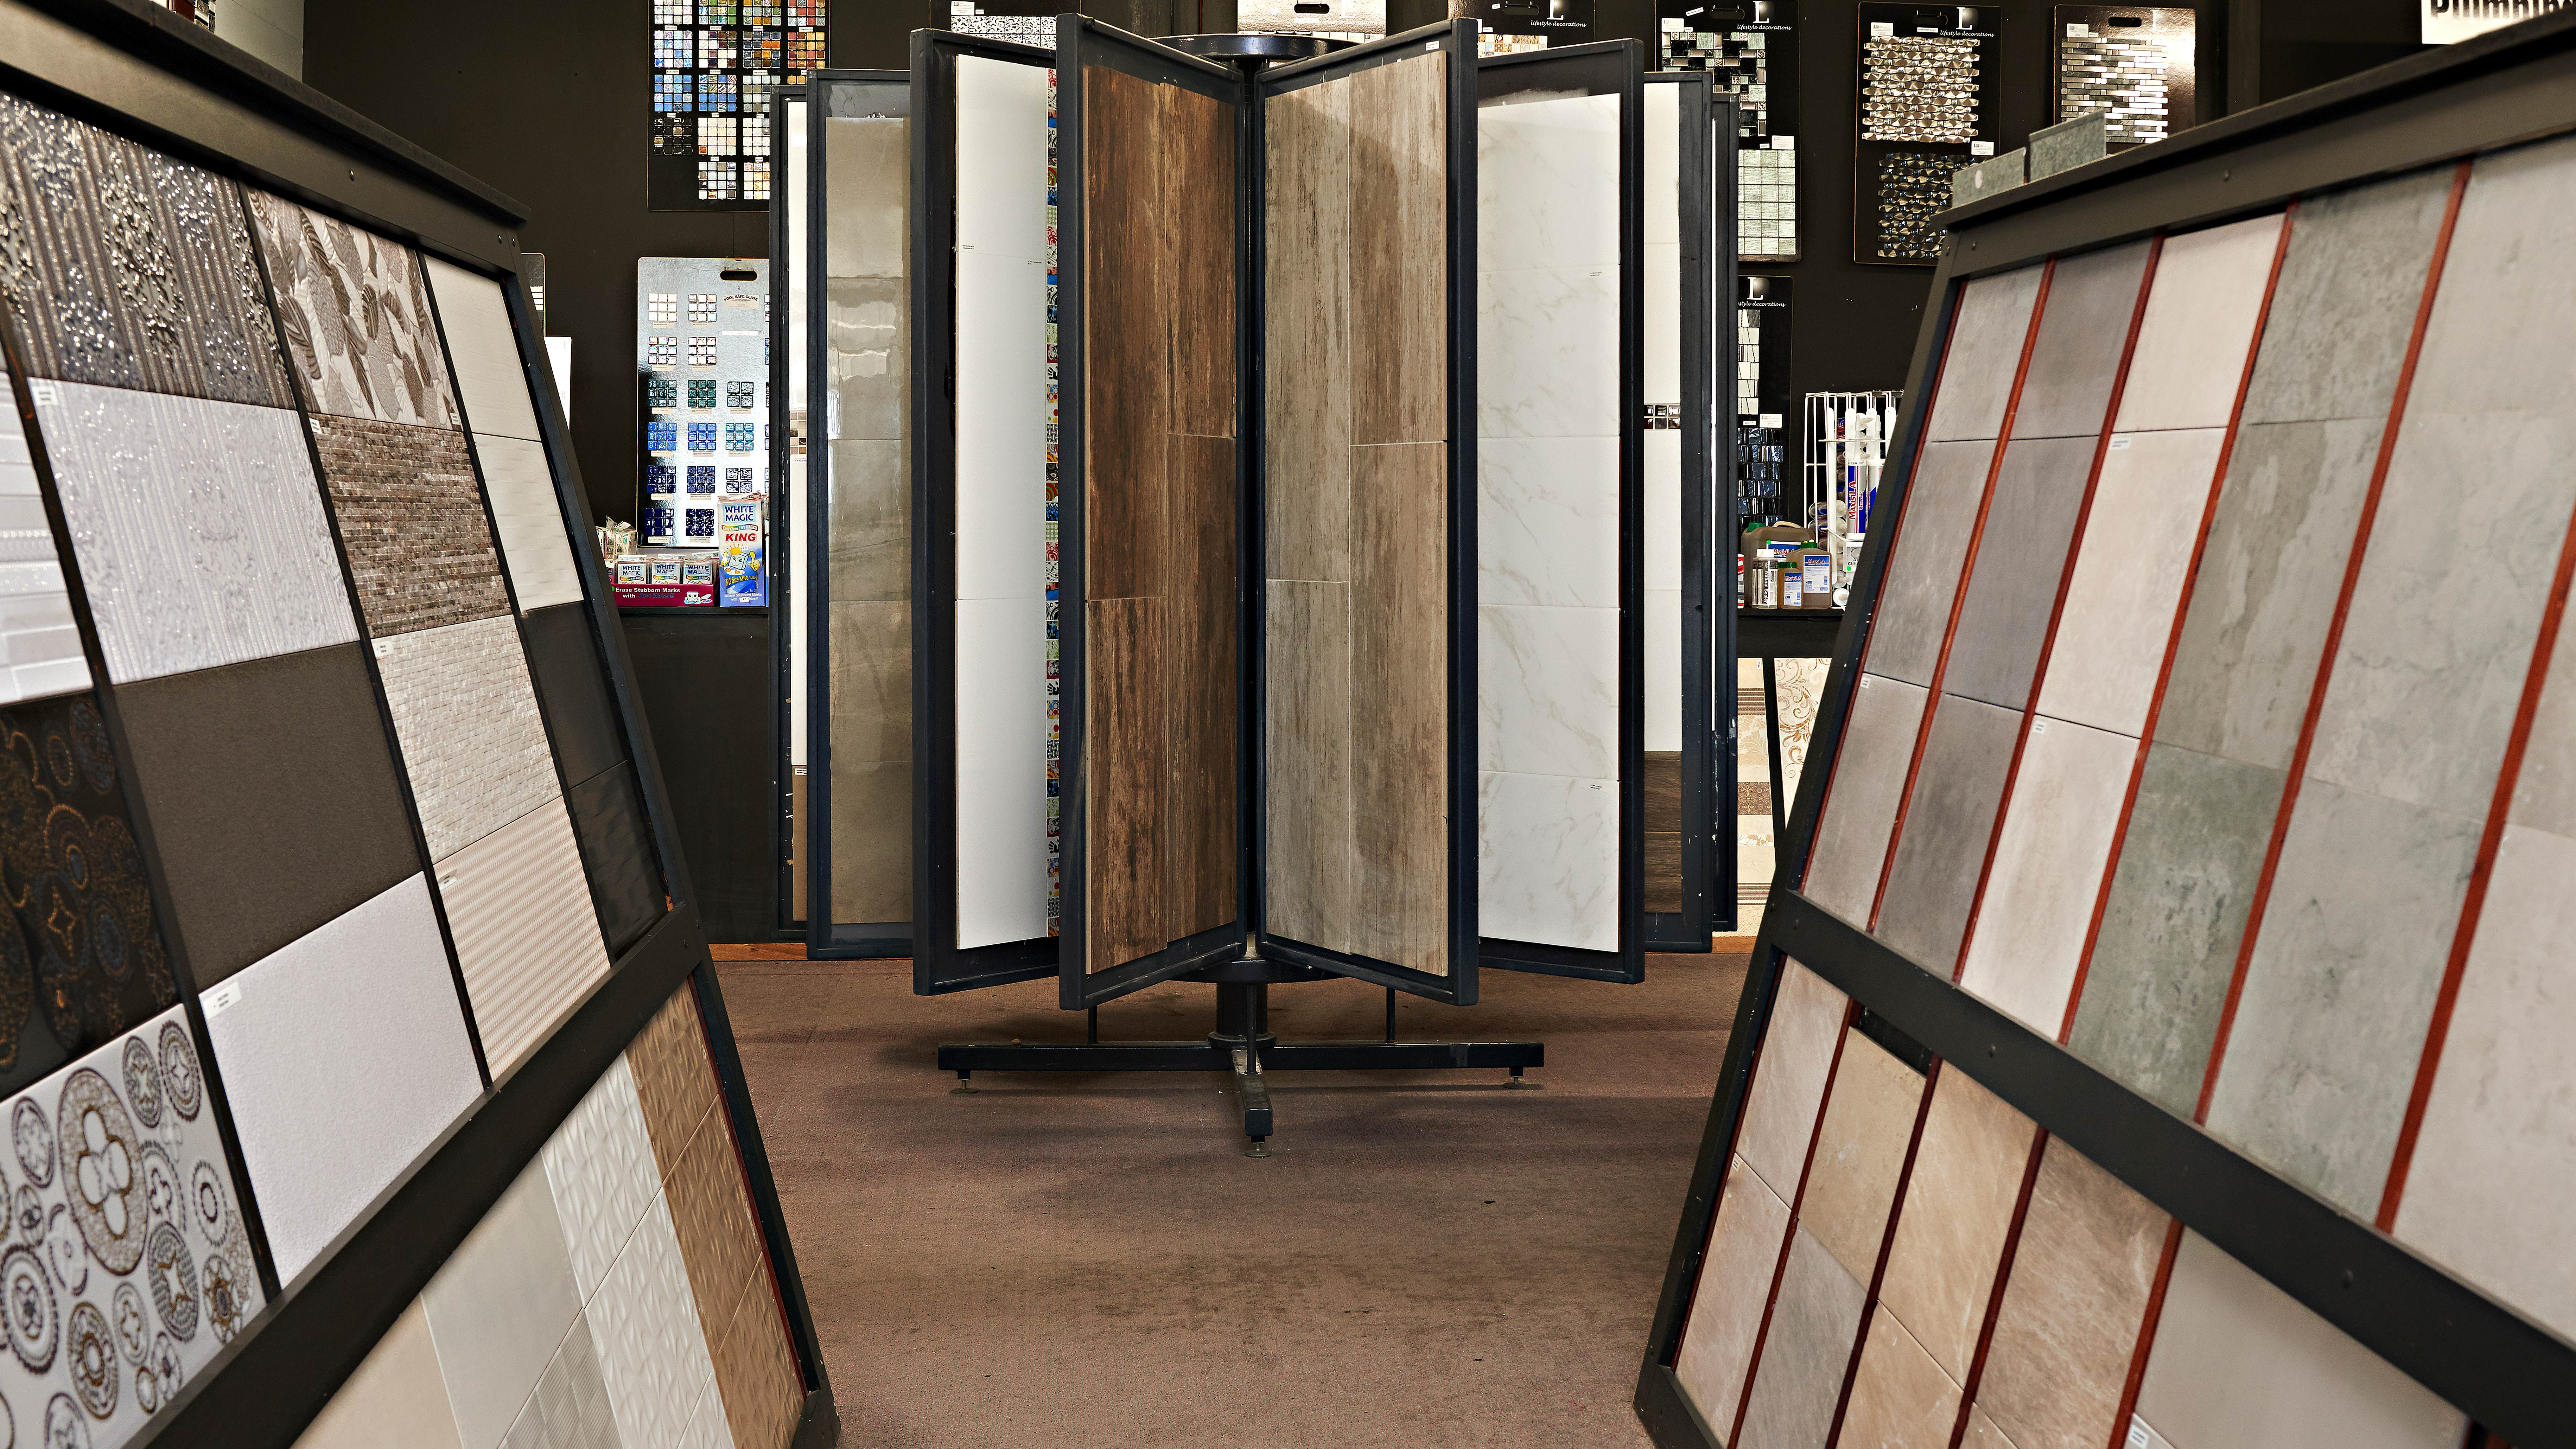 Bathroom Decor & Tiles Albany - Bathroom & Tile Showroom